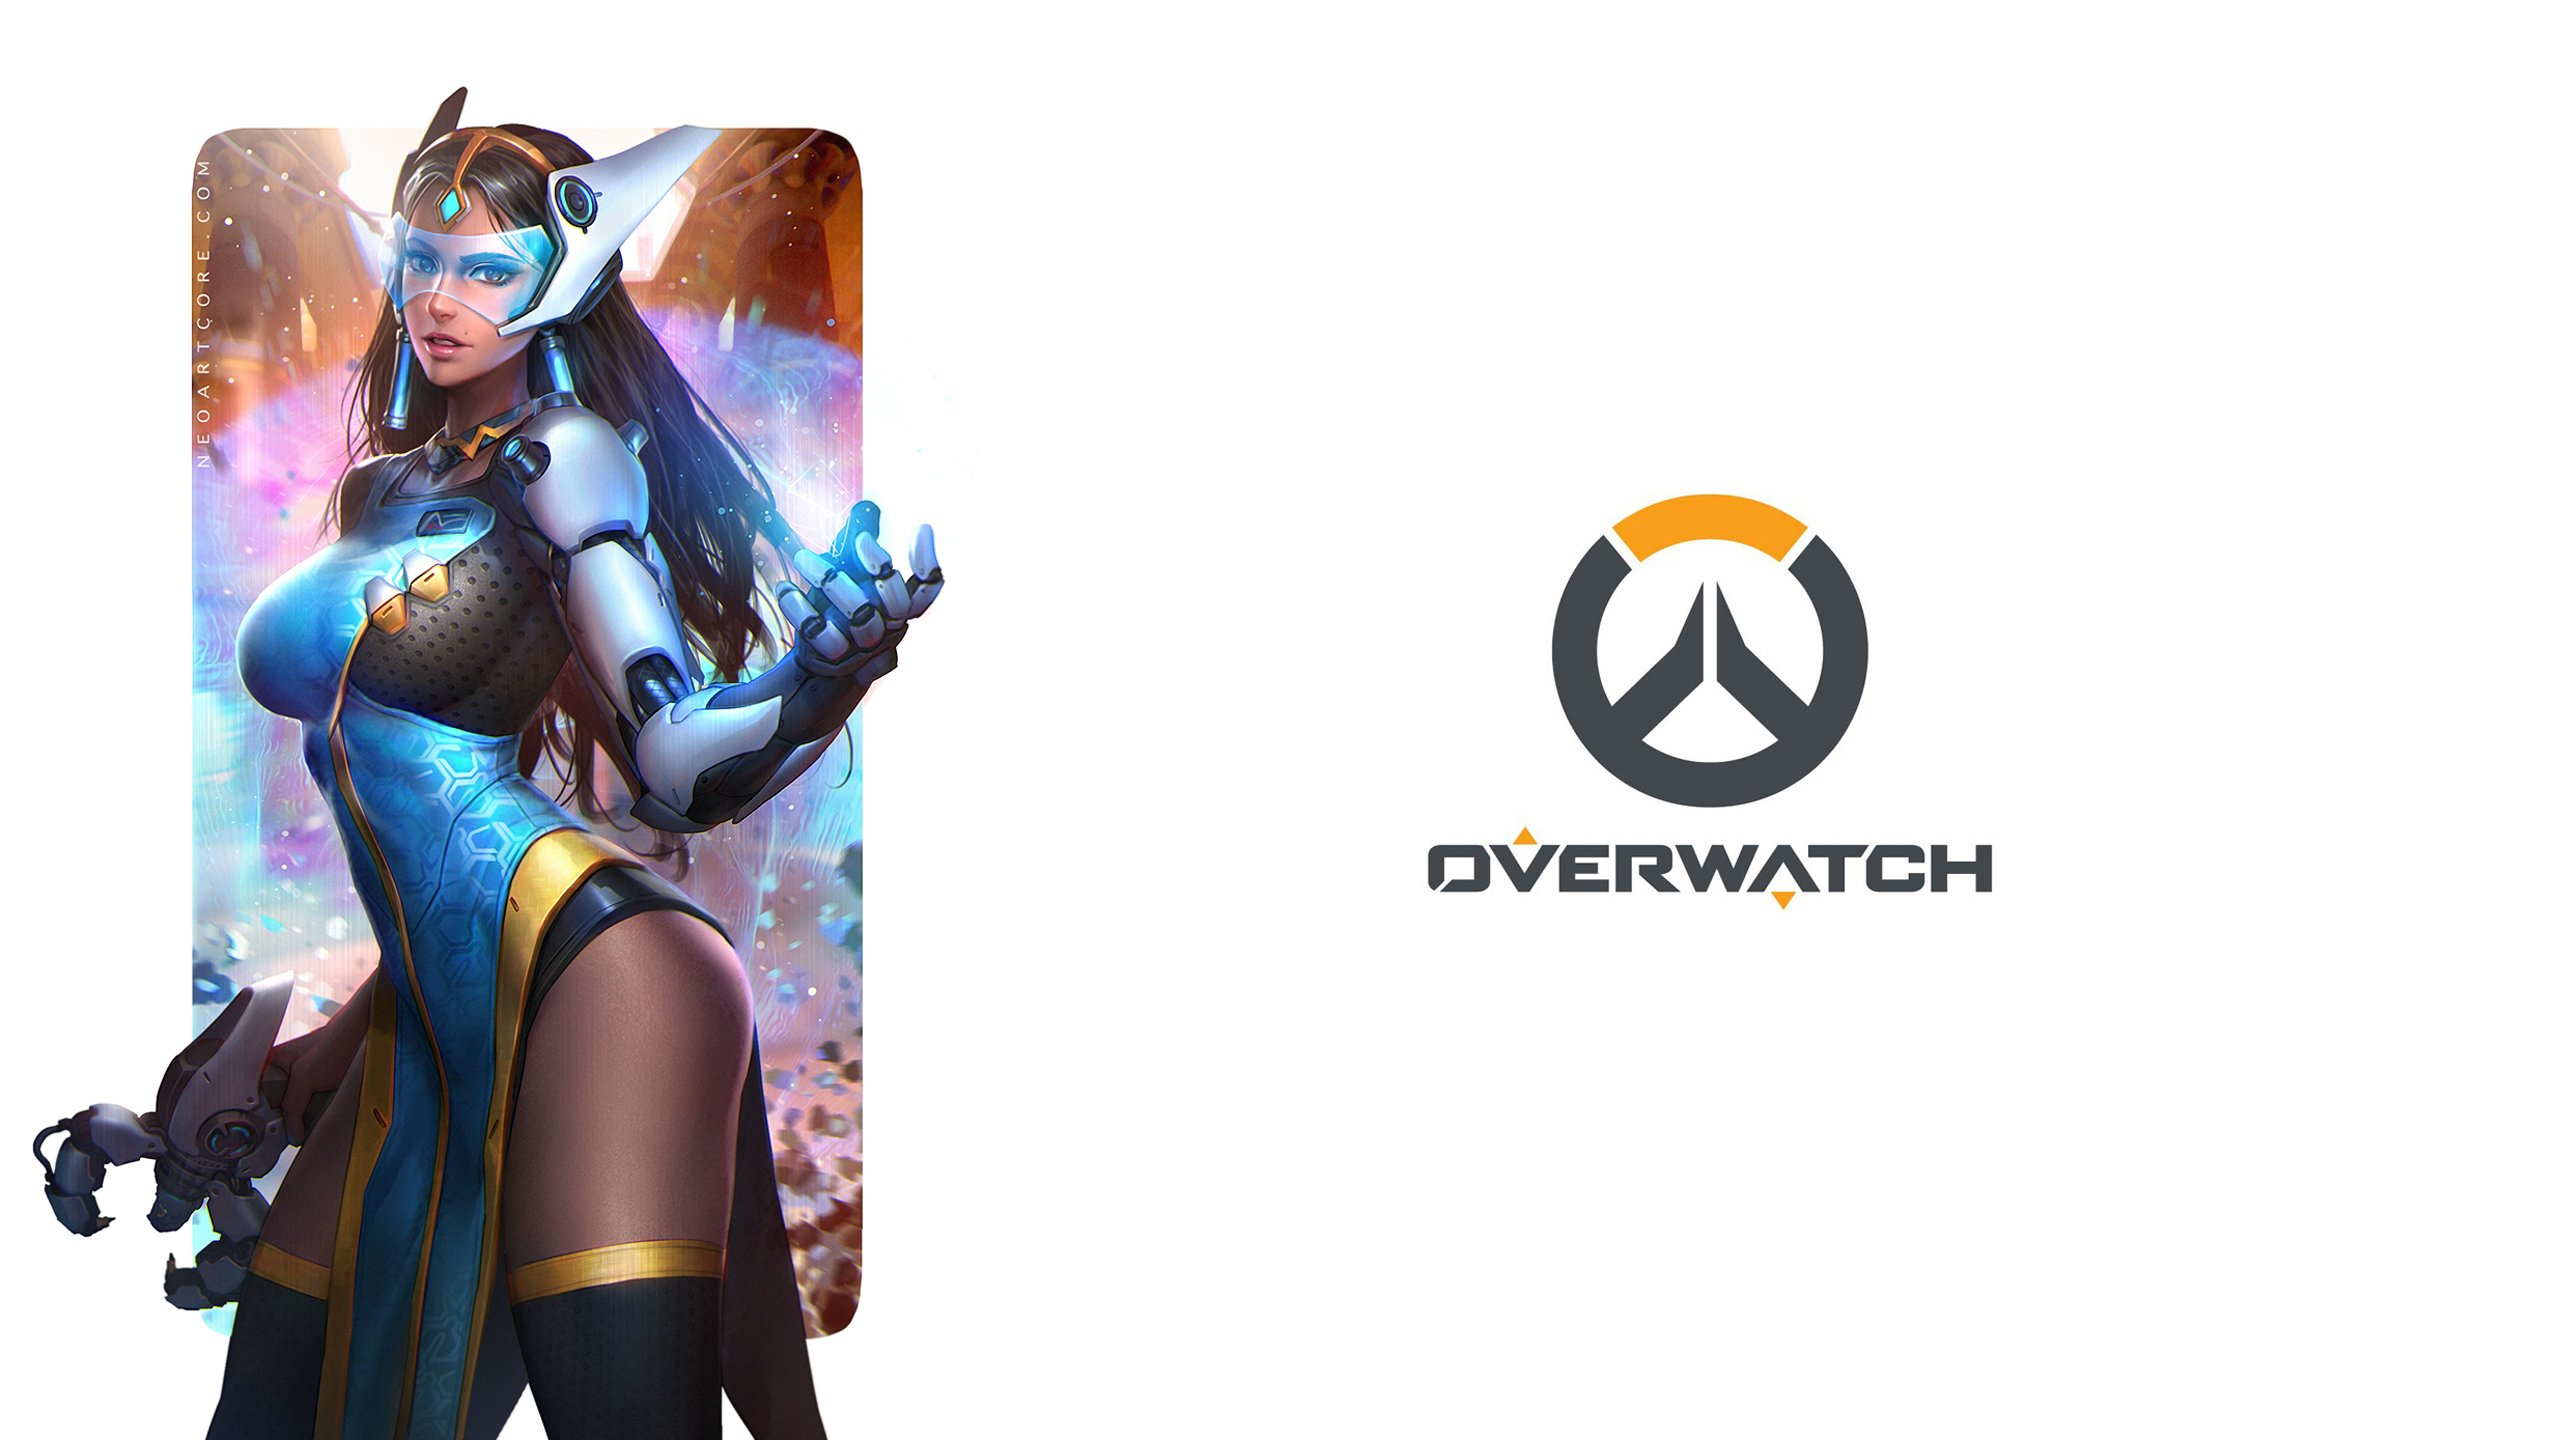 OVERWATCH shooter action fighting mecha sci fi strategy wallpaper 2560x1440